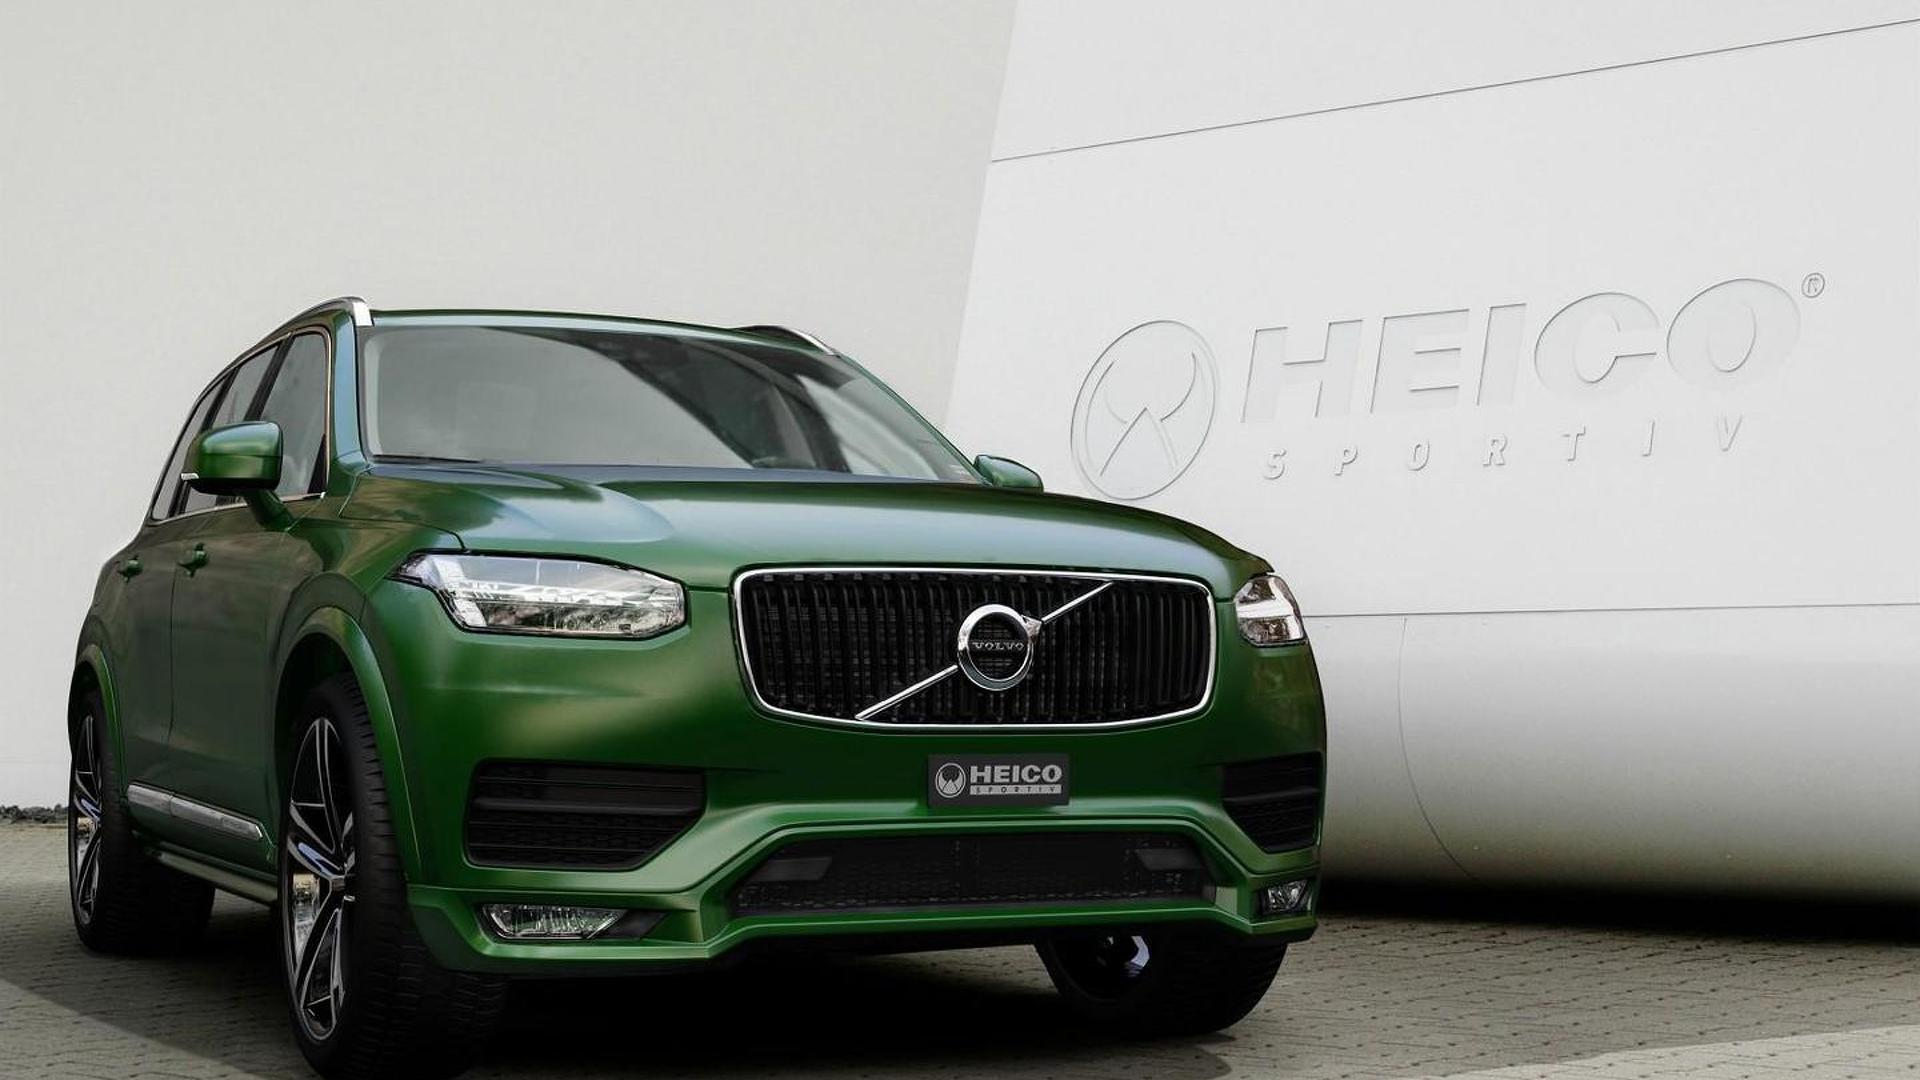 2015 Volvo XC90 gets styling package from Heico Sportiv